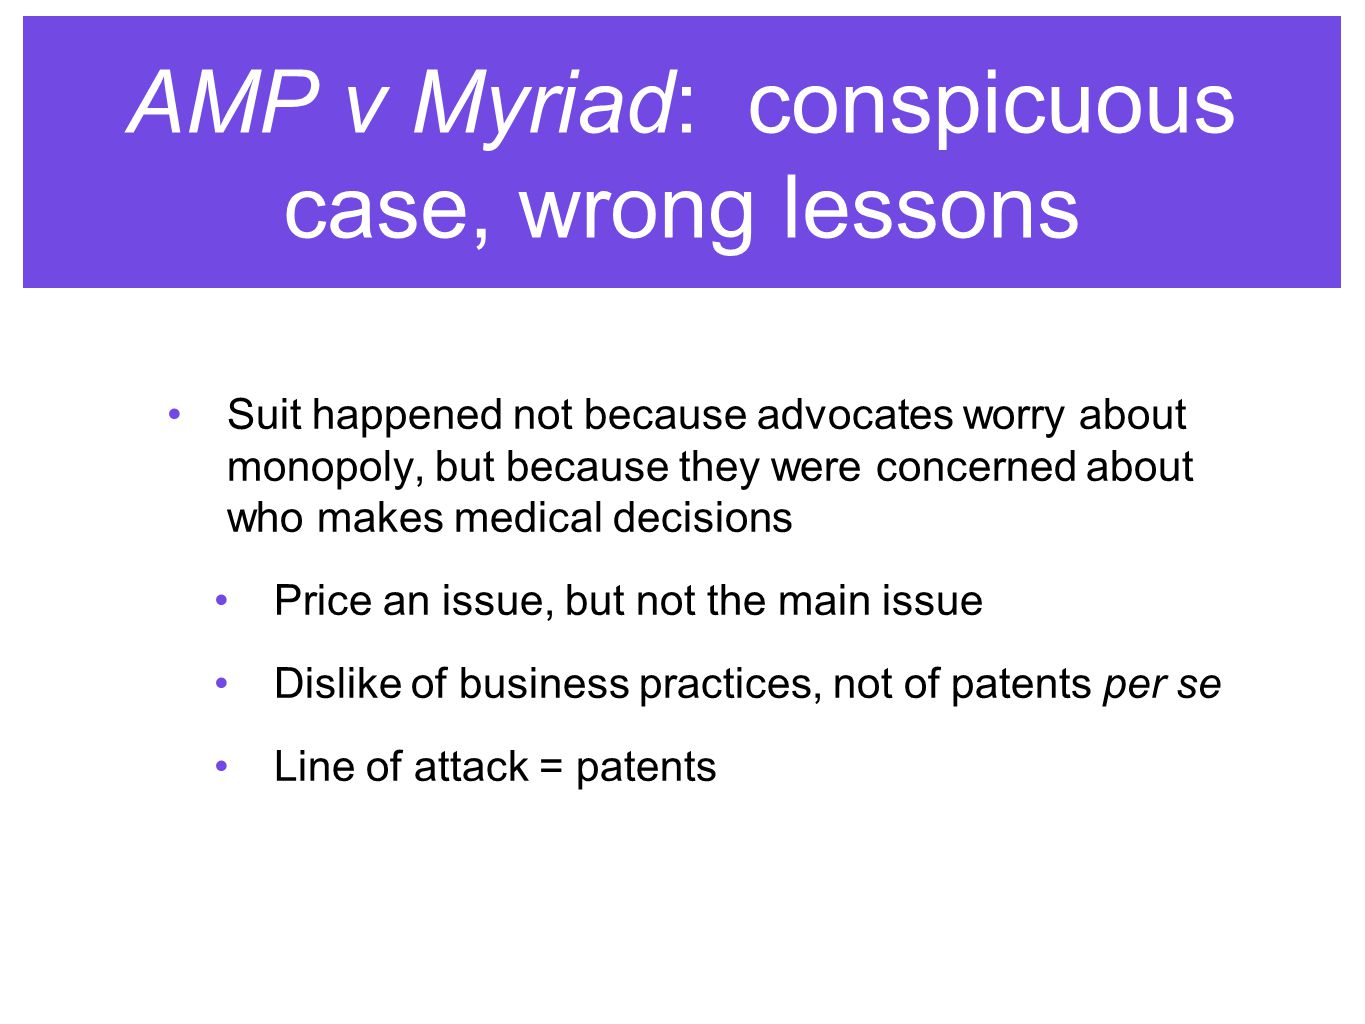 AMP v Myriad: conspicuous case, wrong lessons Suit happened not because advocates worry about monopoly, but because they were concerned about who makes medical decisions Price an issue, but not the main issue Dislike of business practices, not of patents per se Line of attack = patents